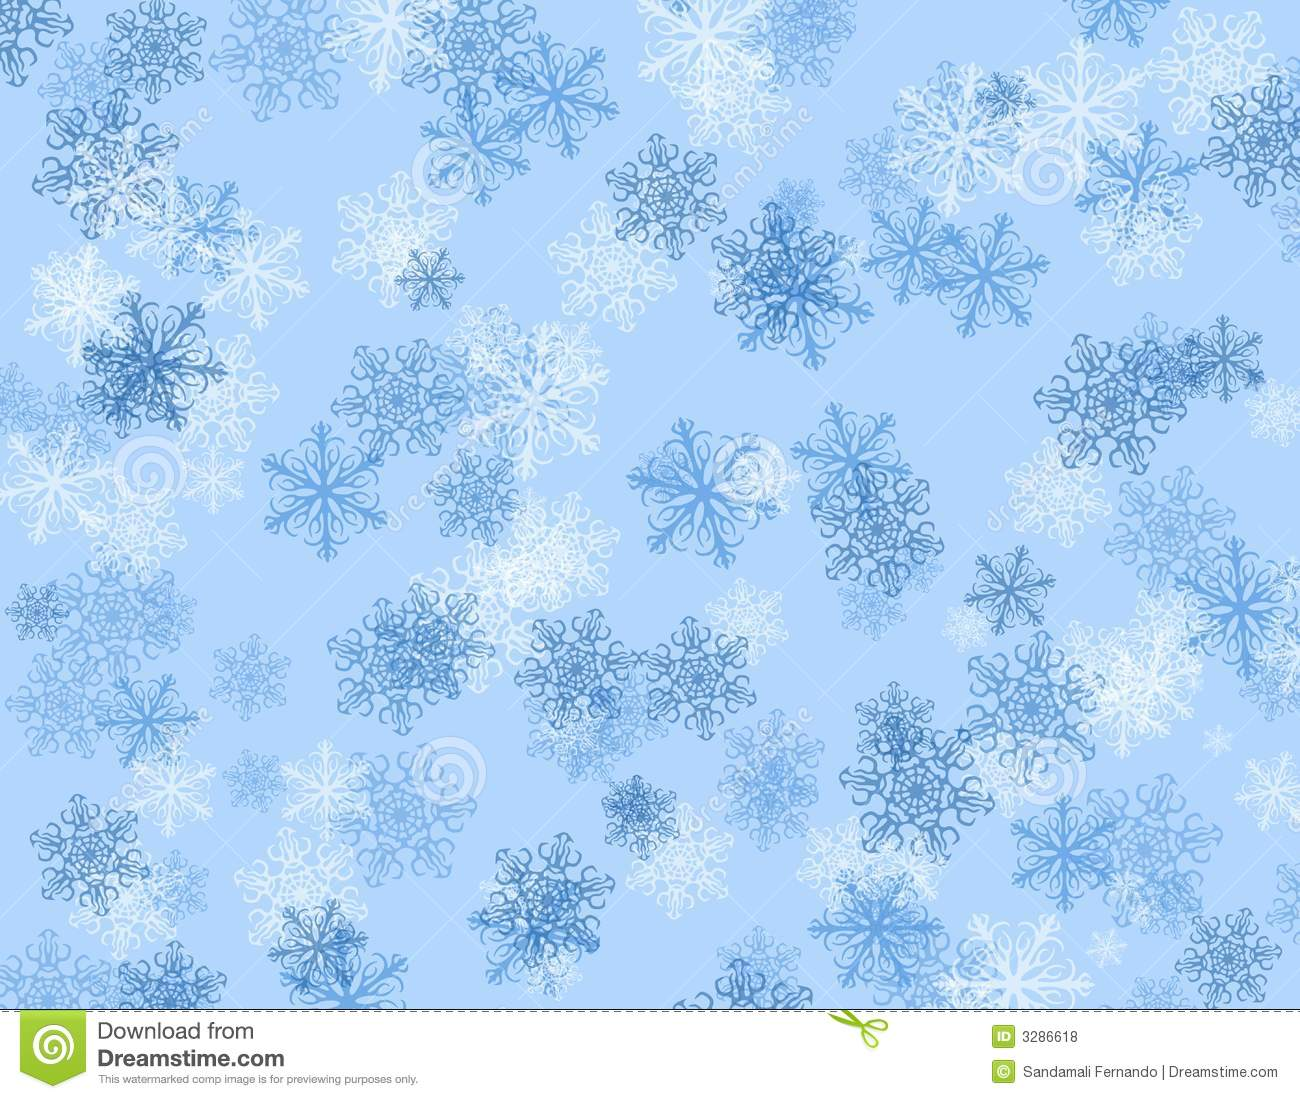 Falling Stars Grunge Wallpaper Winter Holiday Background Stock Illustration Image Of